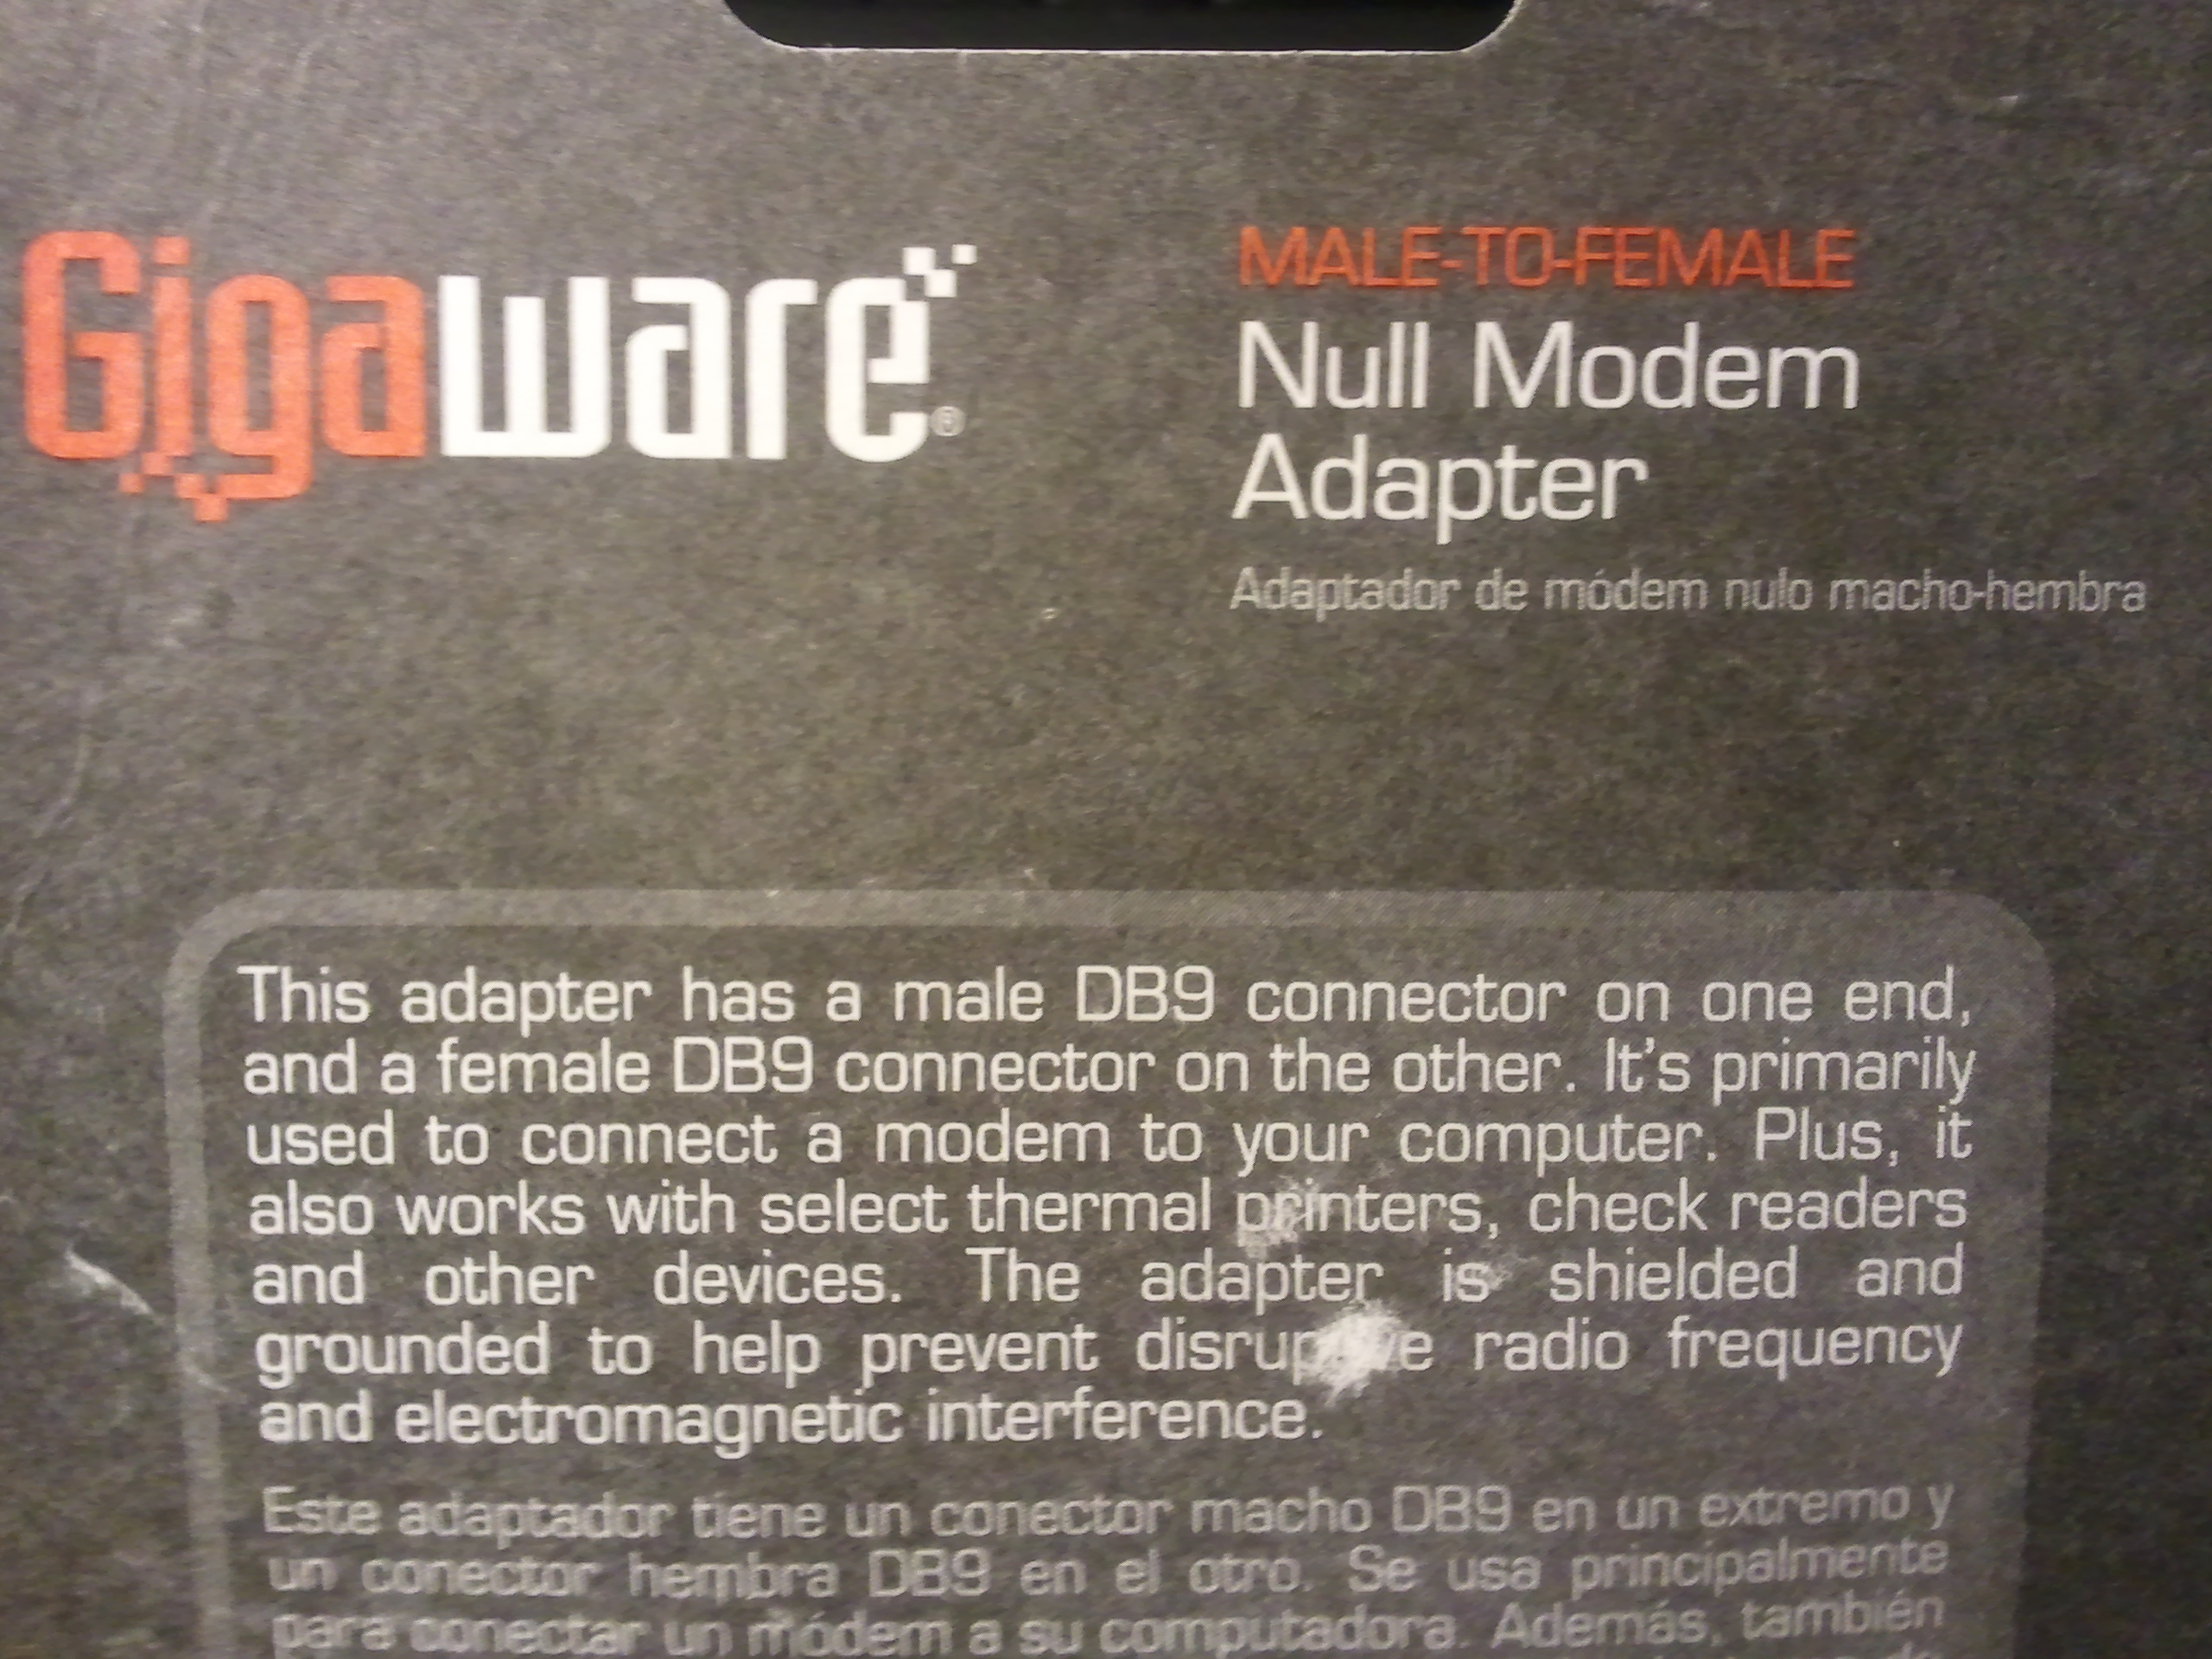 Null Modem Adapter packaging